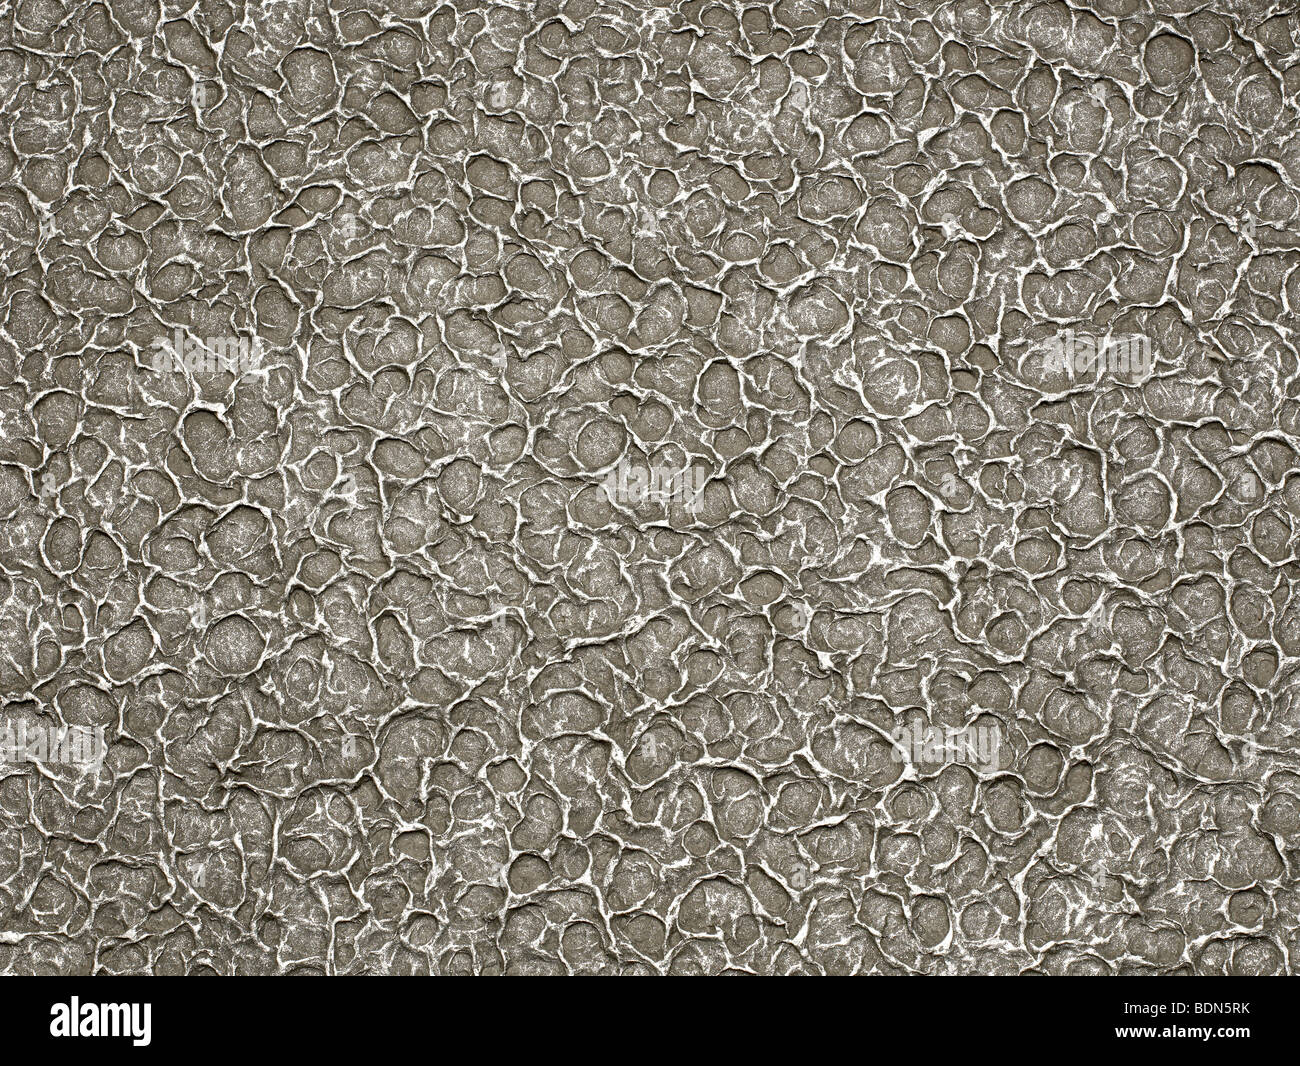 Background Abstract - Stock Image